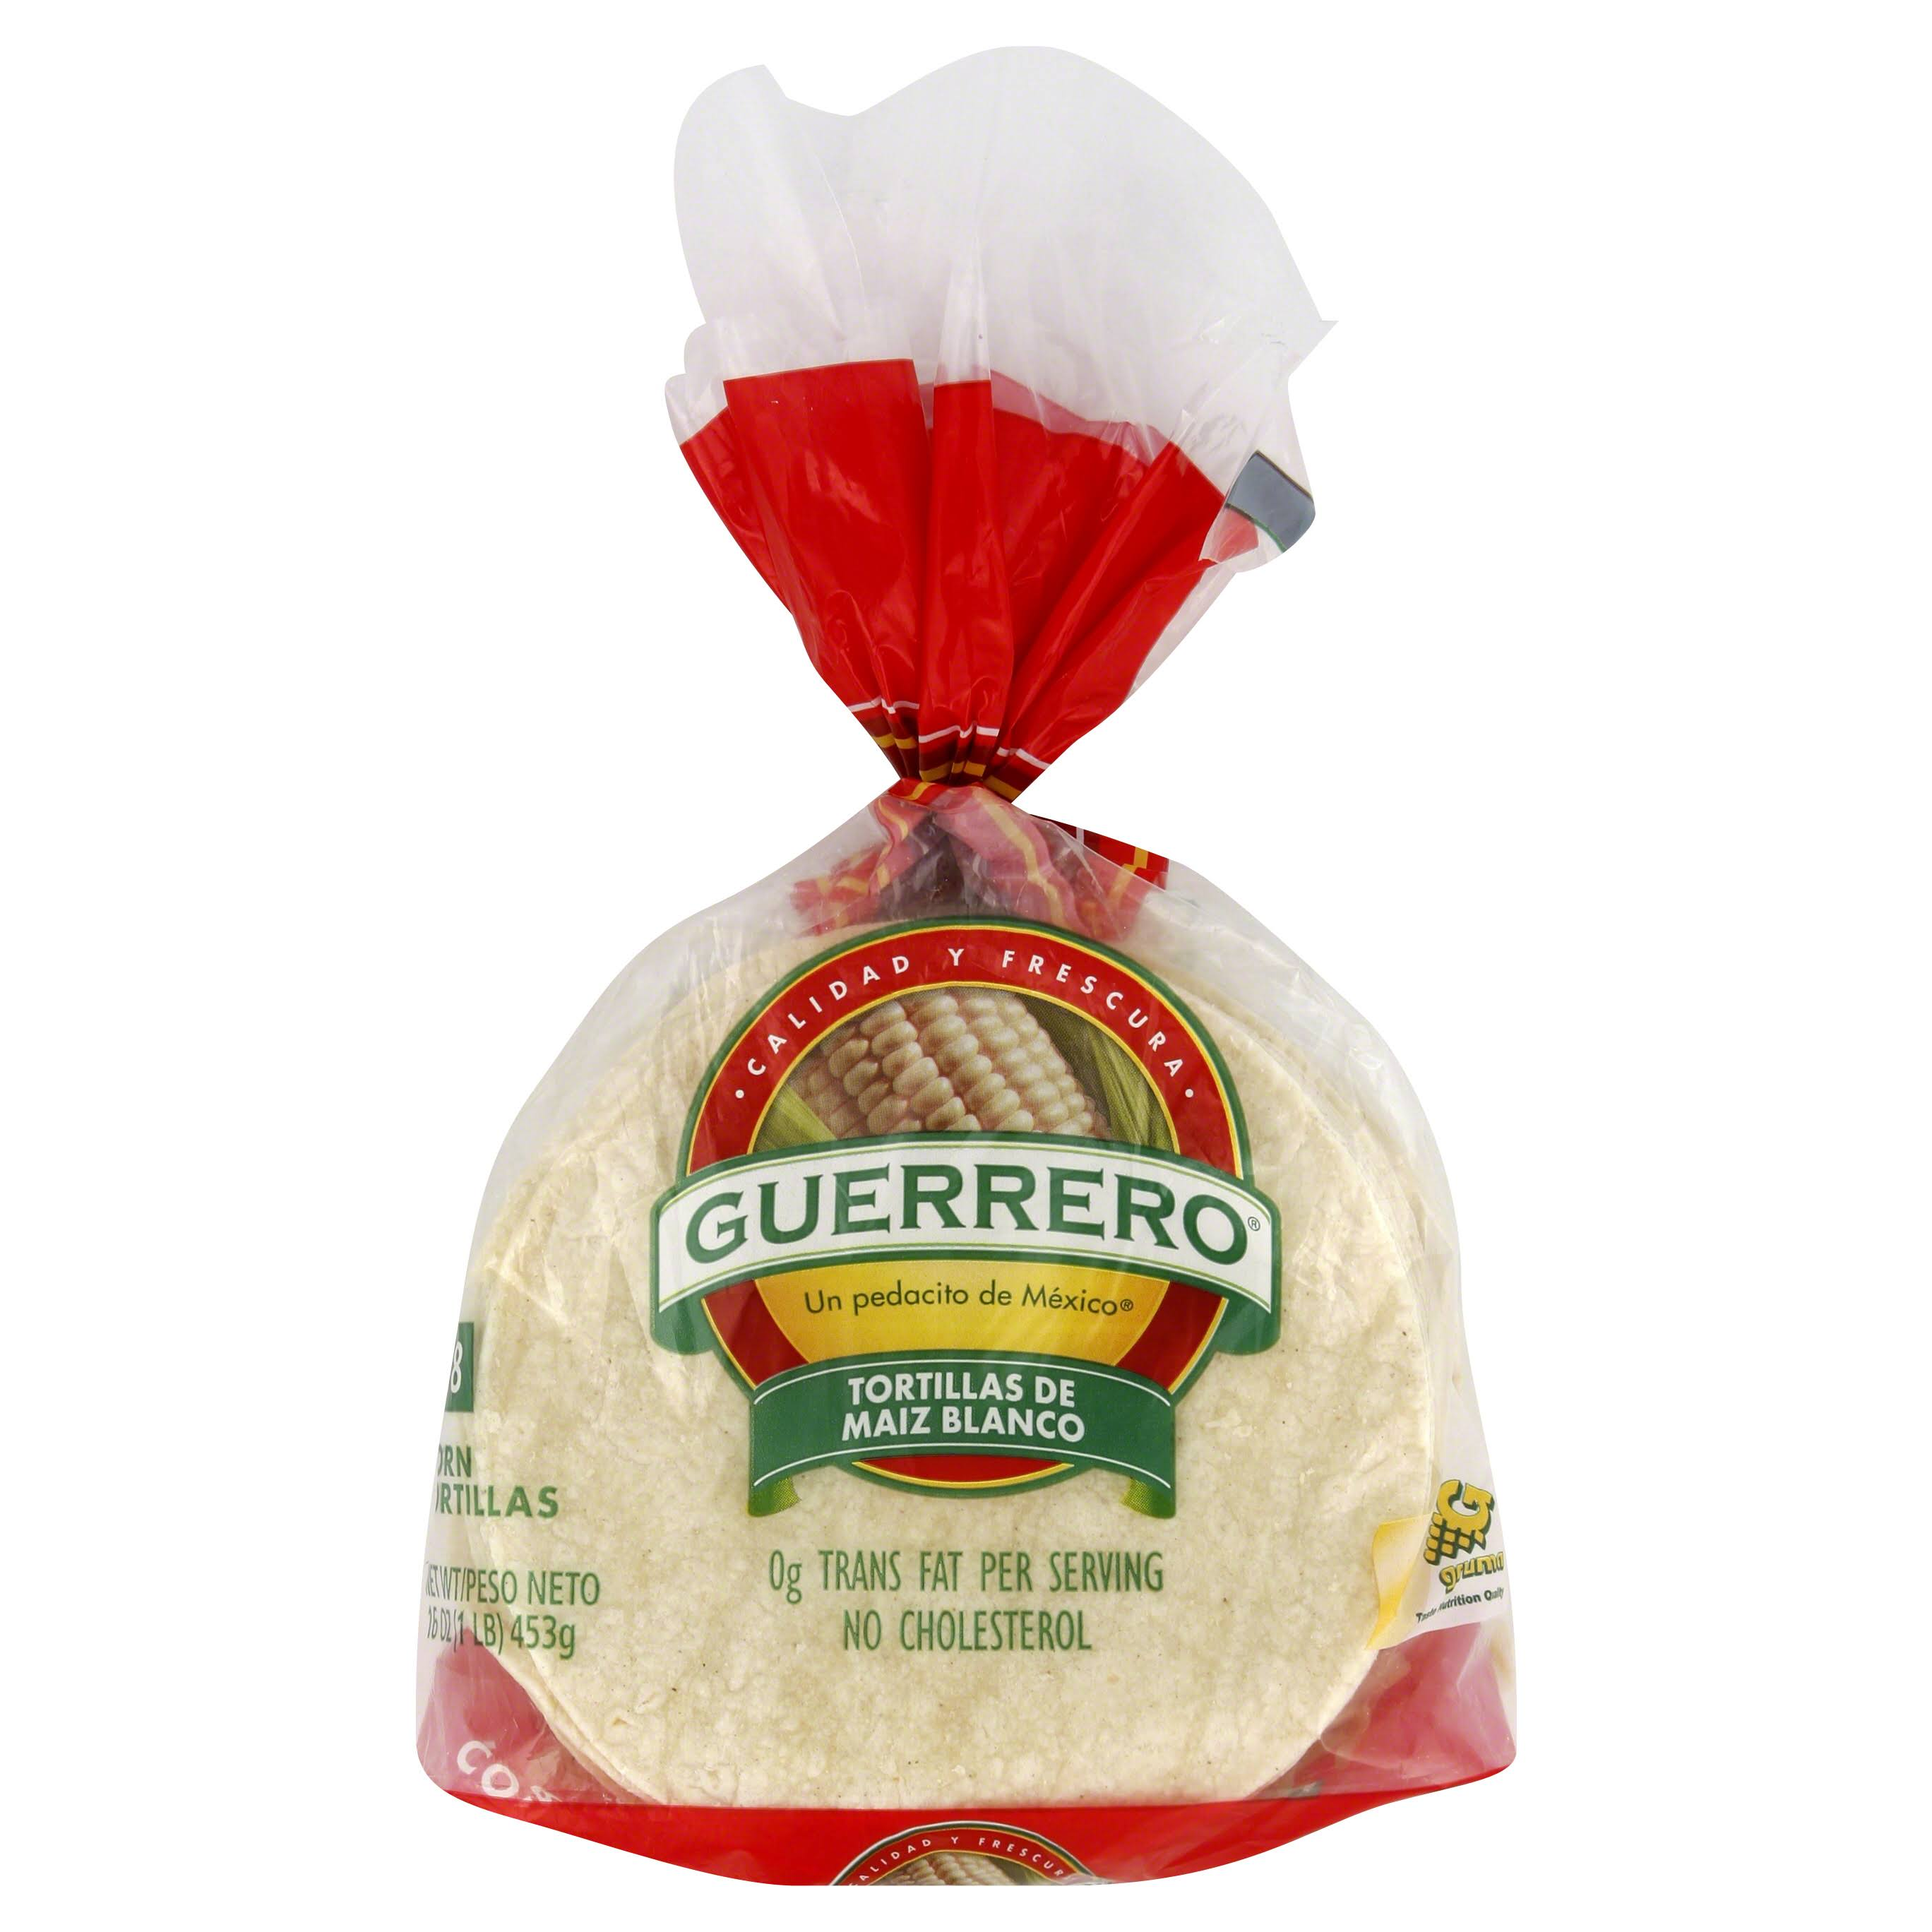 Guerrero Corn Tortillas - 18ct, 16oz